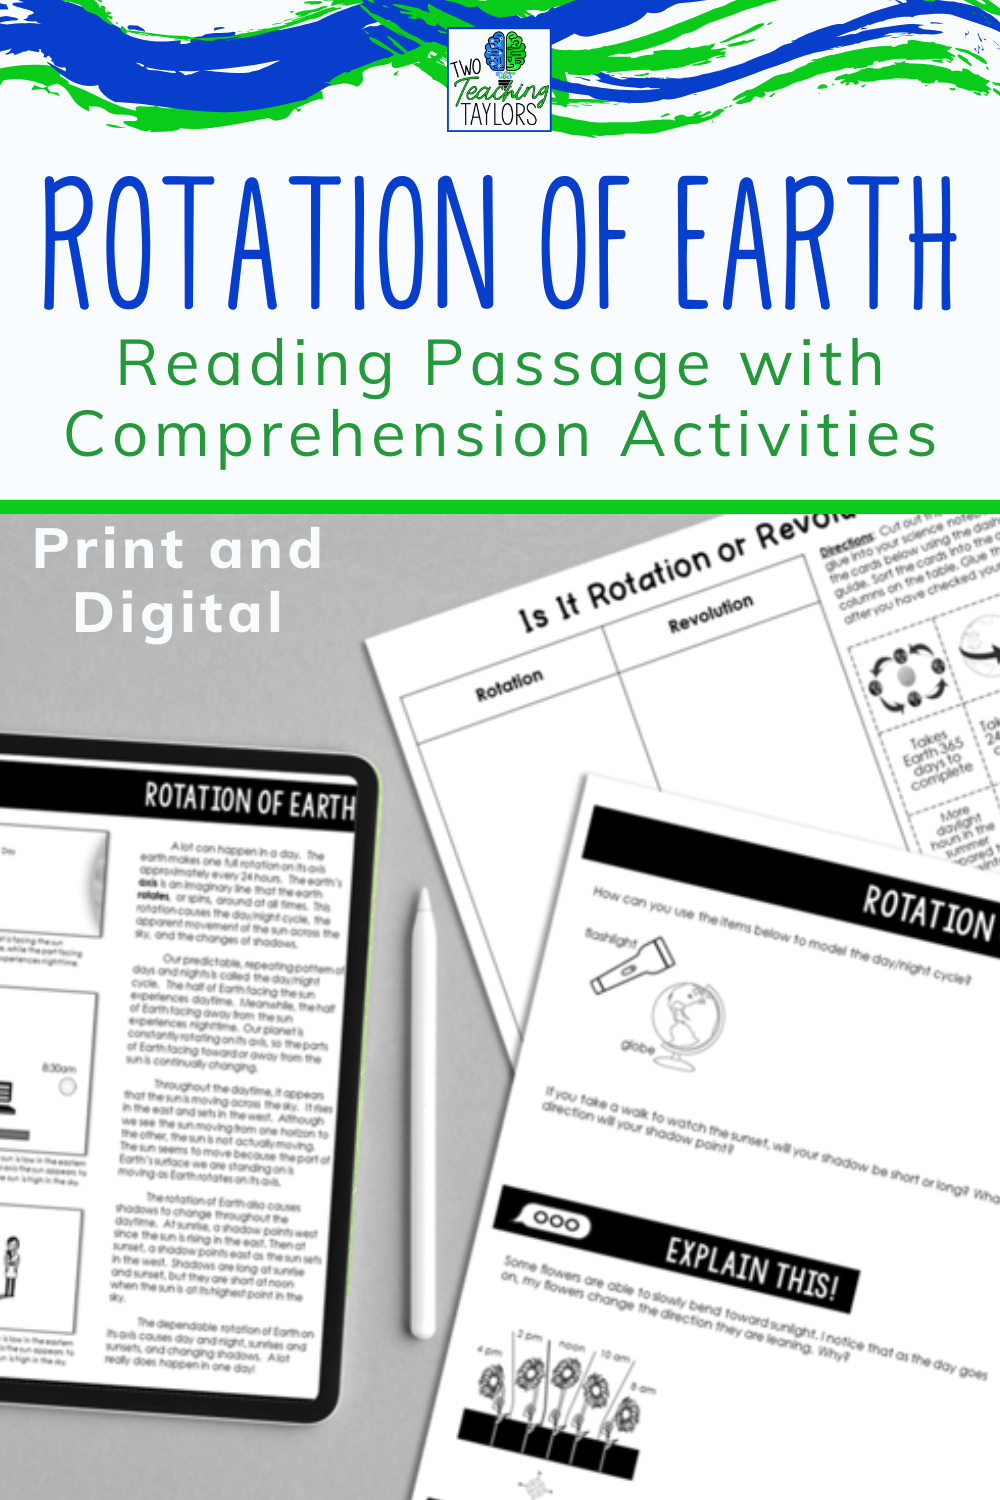 Rotation Of Earth Reading Passage With Comprehension Activities Elementary Science Classroom Reading Passages Upper Elementary Science [ 1500 x 1000 Pixel ]